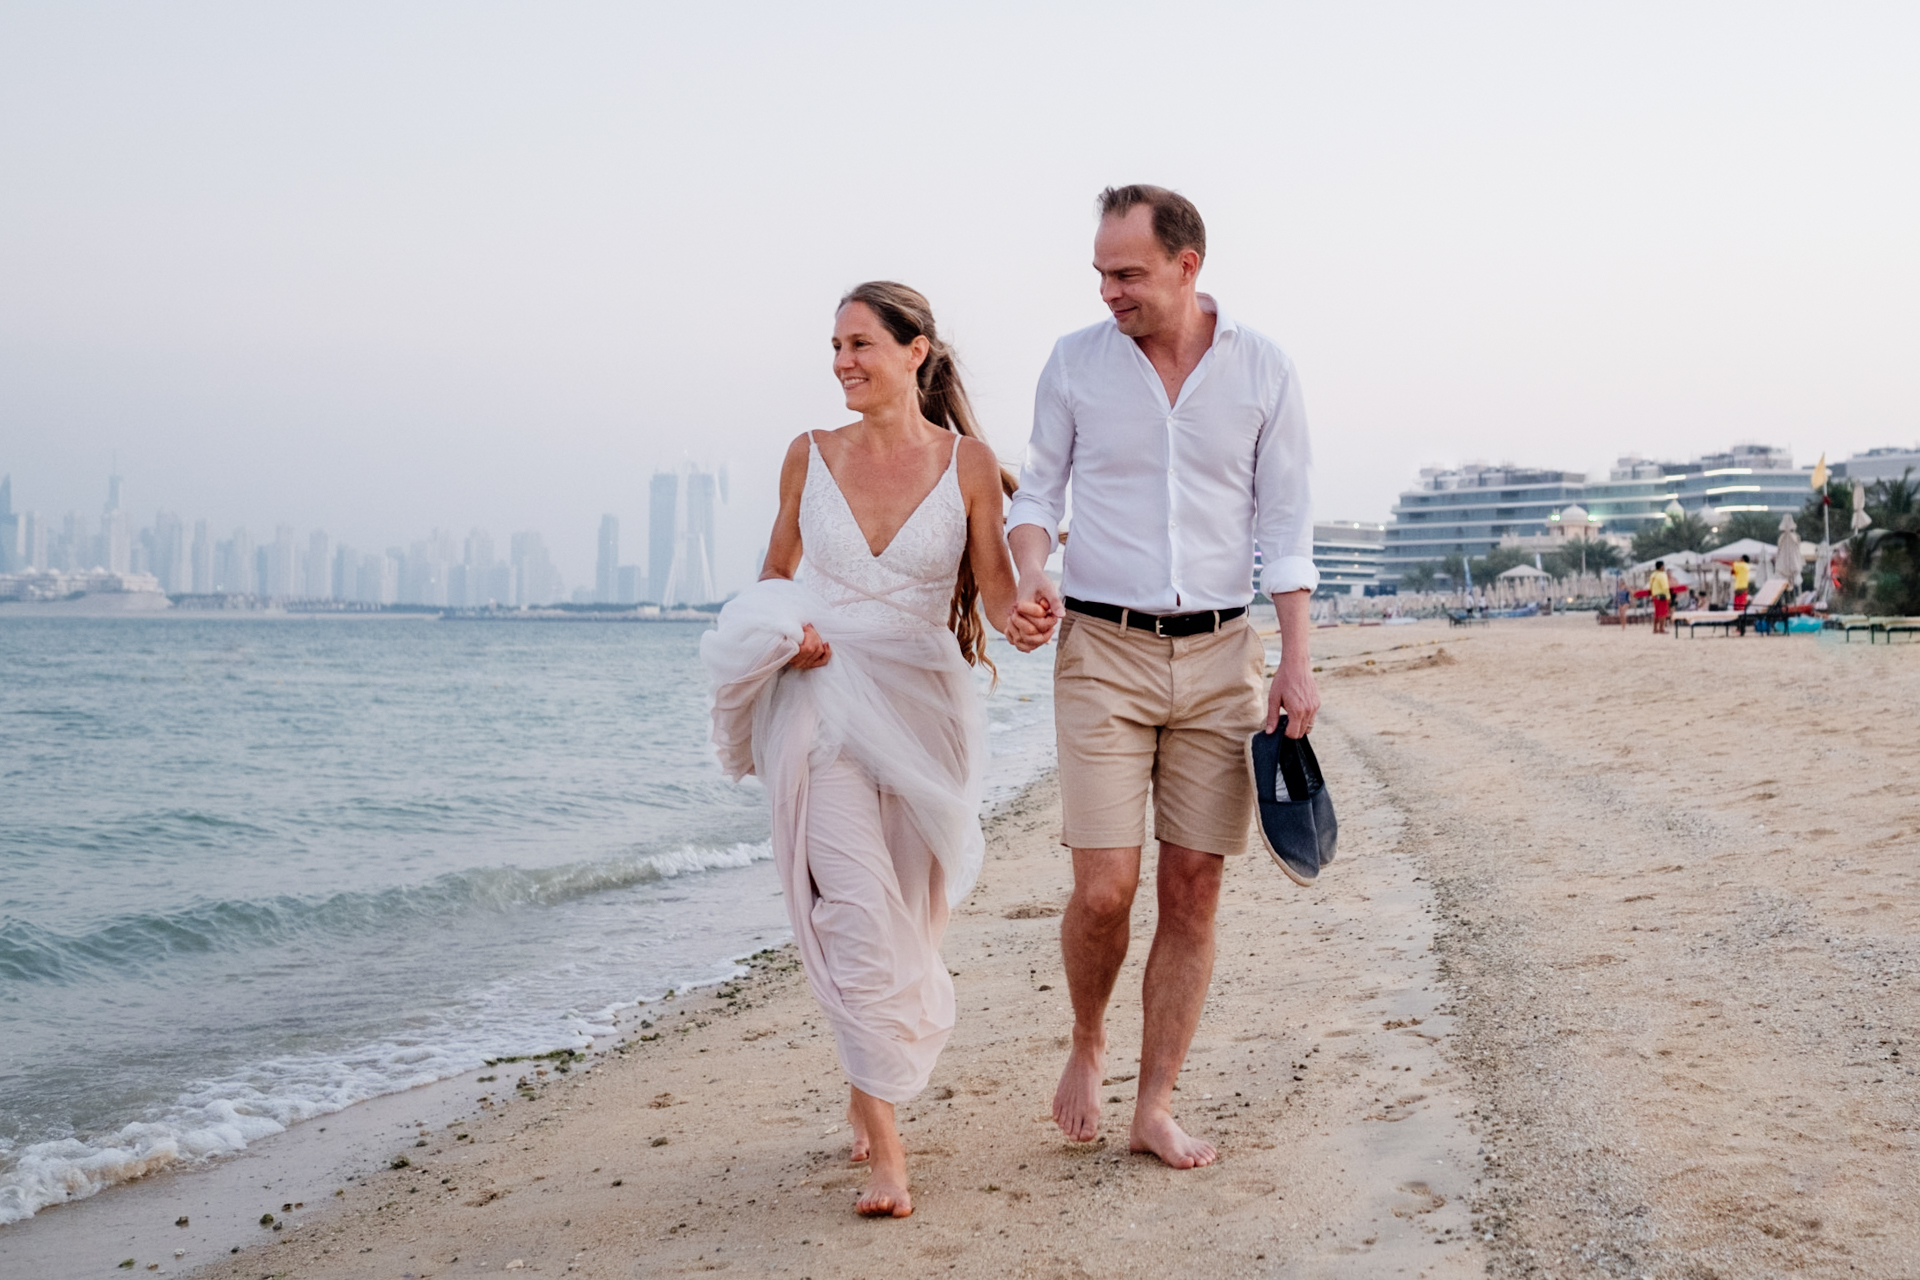 UAE Beach Elopement Couple Image | A sunset walk along the beach